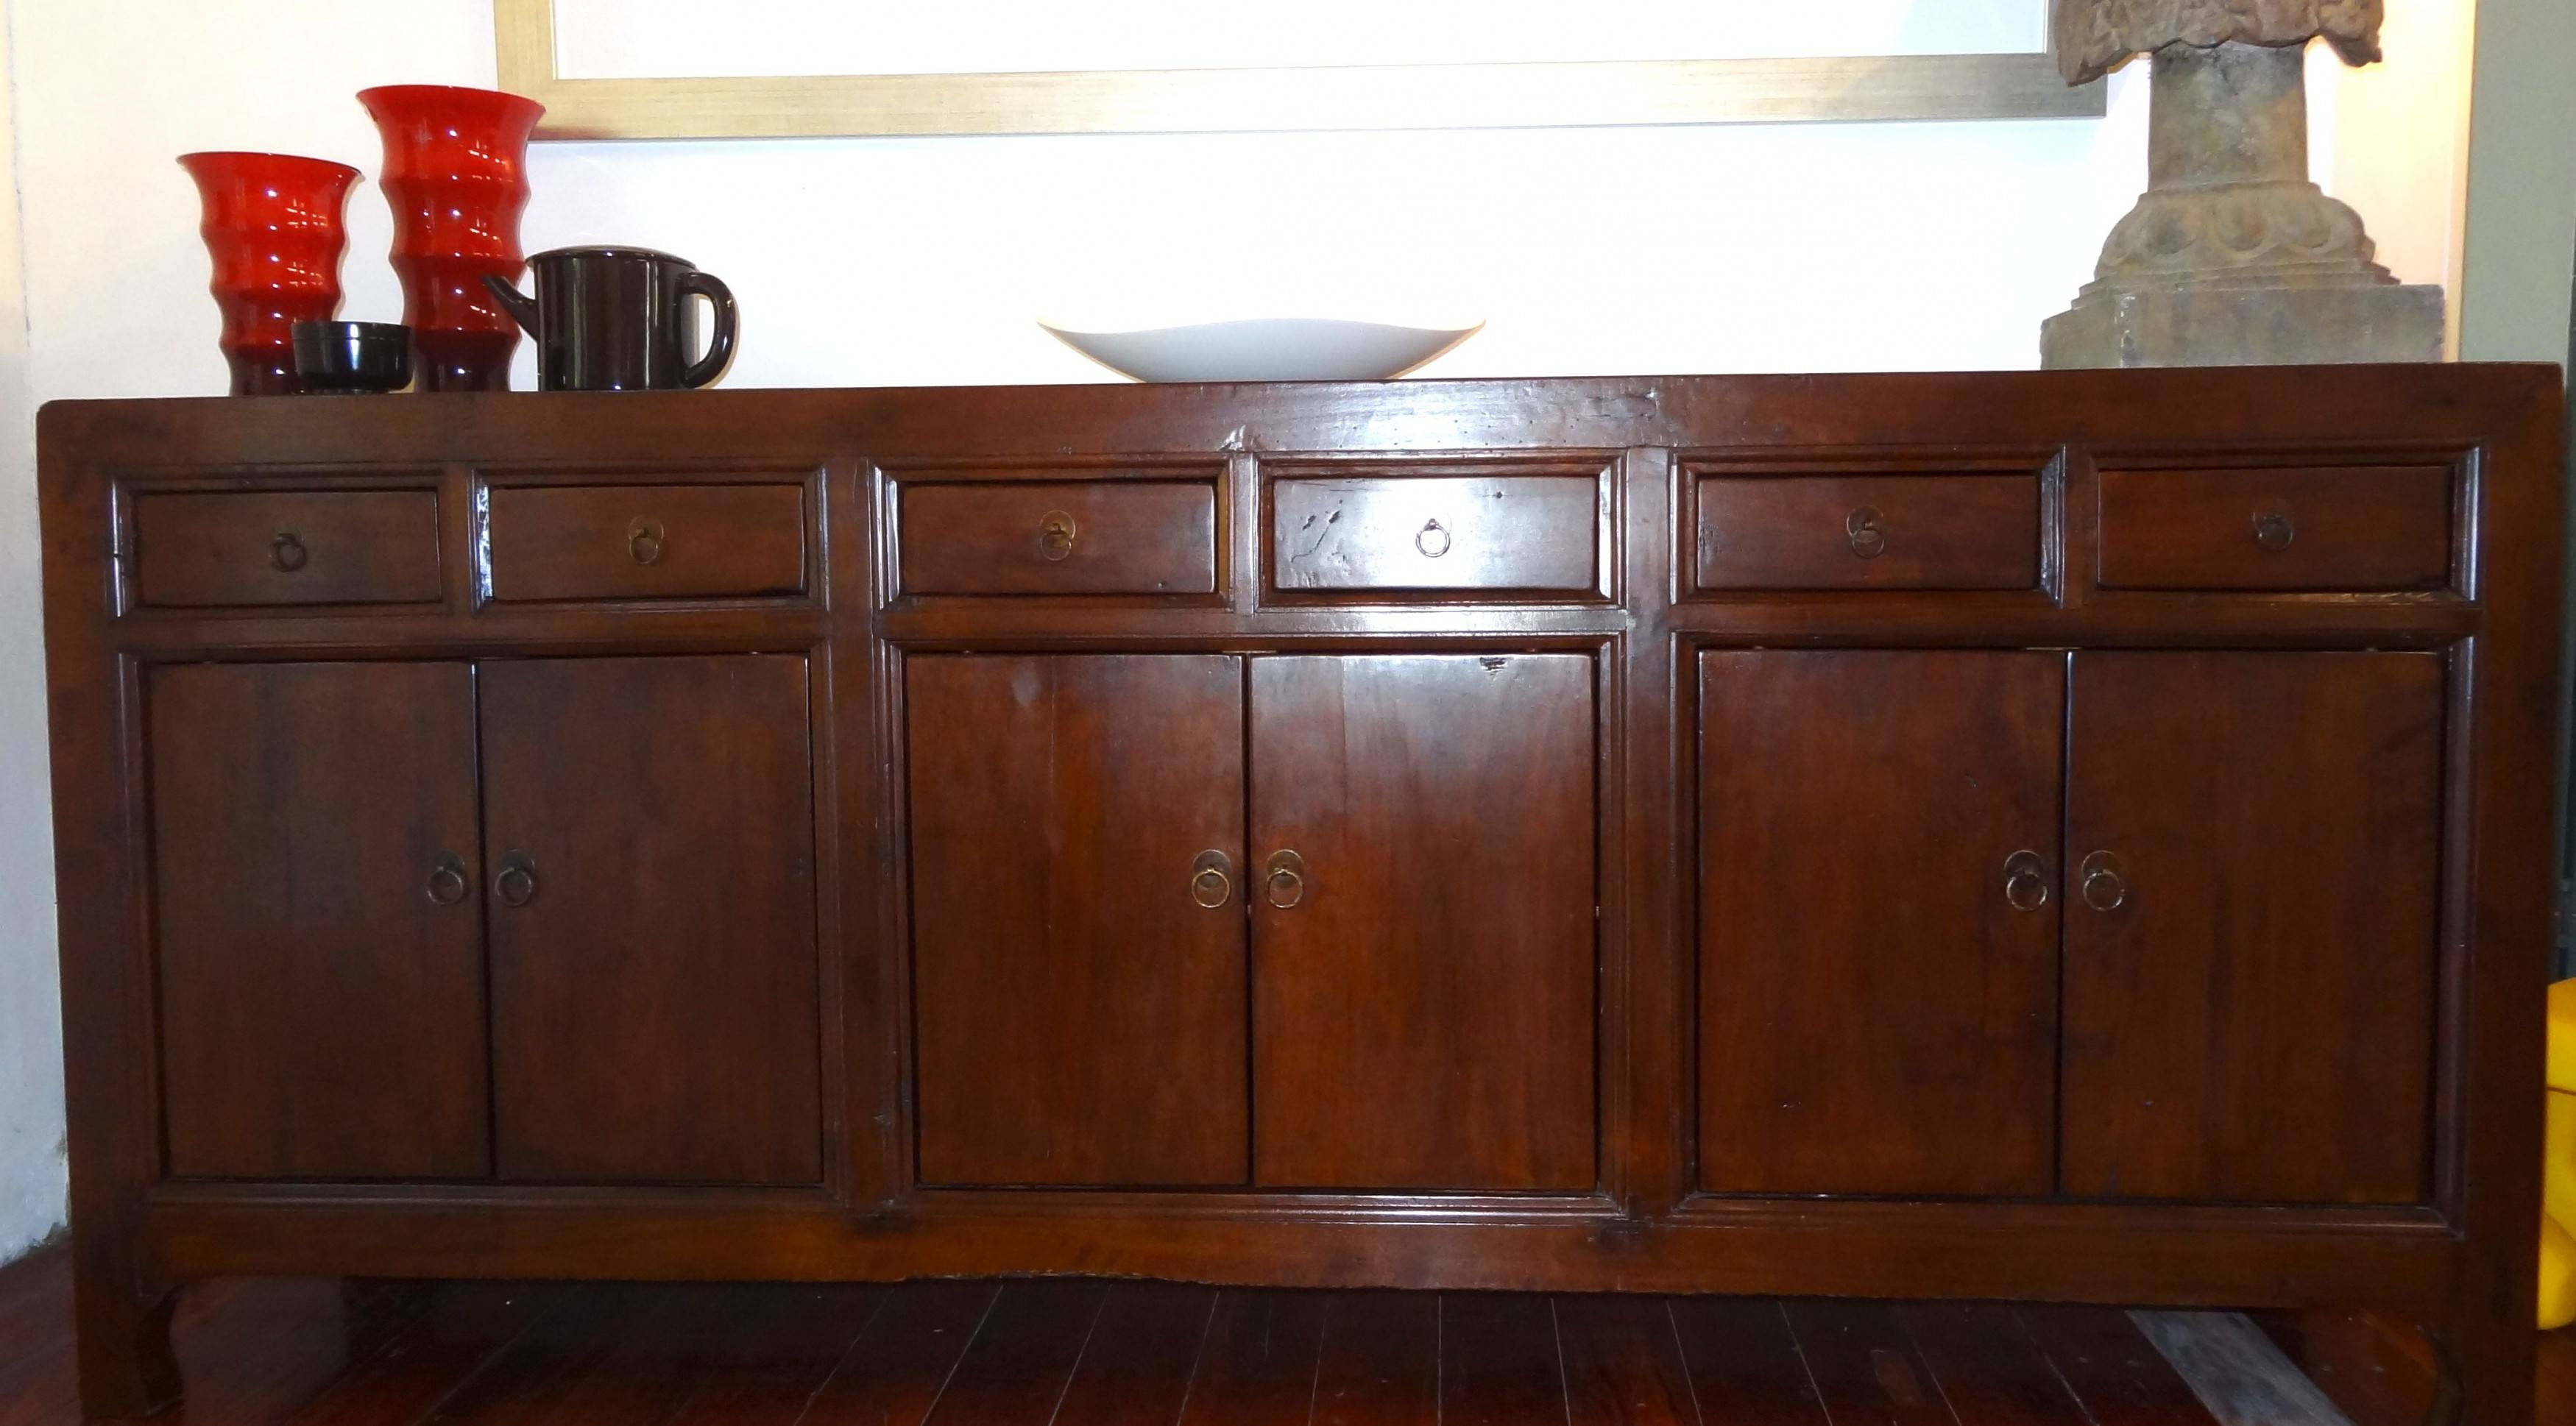 Antique Sideboards | Gallery Categories | Aptos Cruz Inside Chinese Sideboards (View 9 of 30)